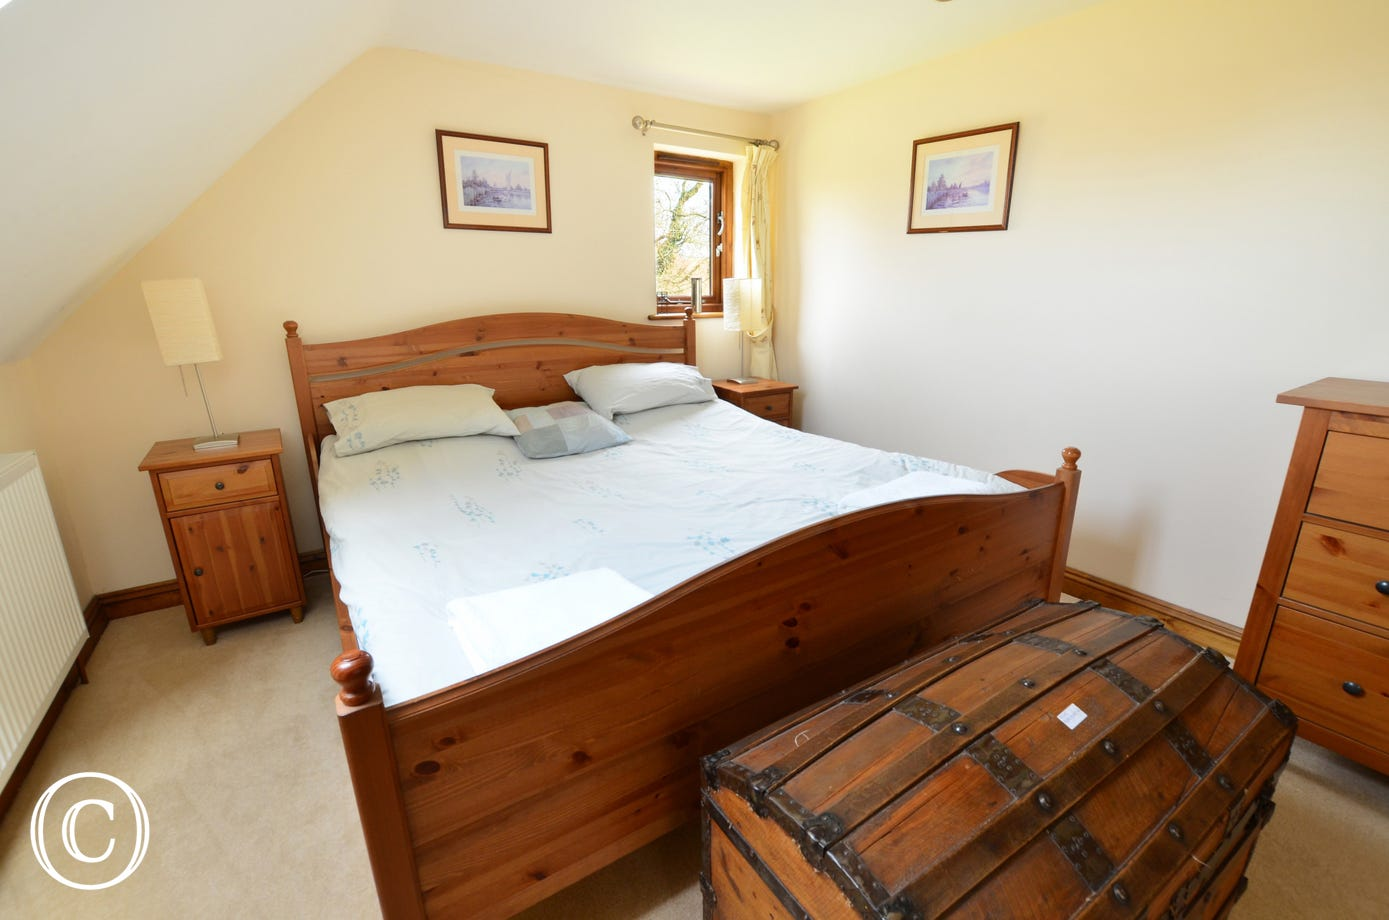 This charming double room has a pine super king size bed and a sloping ceiling